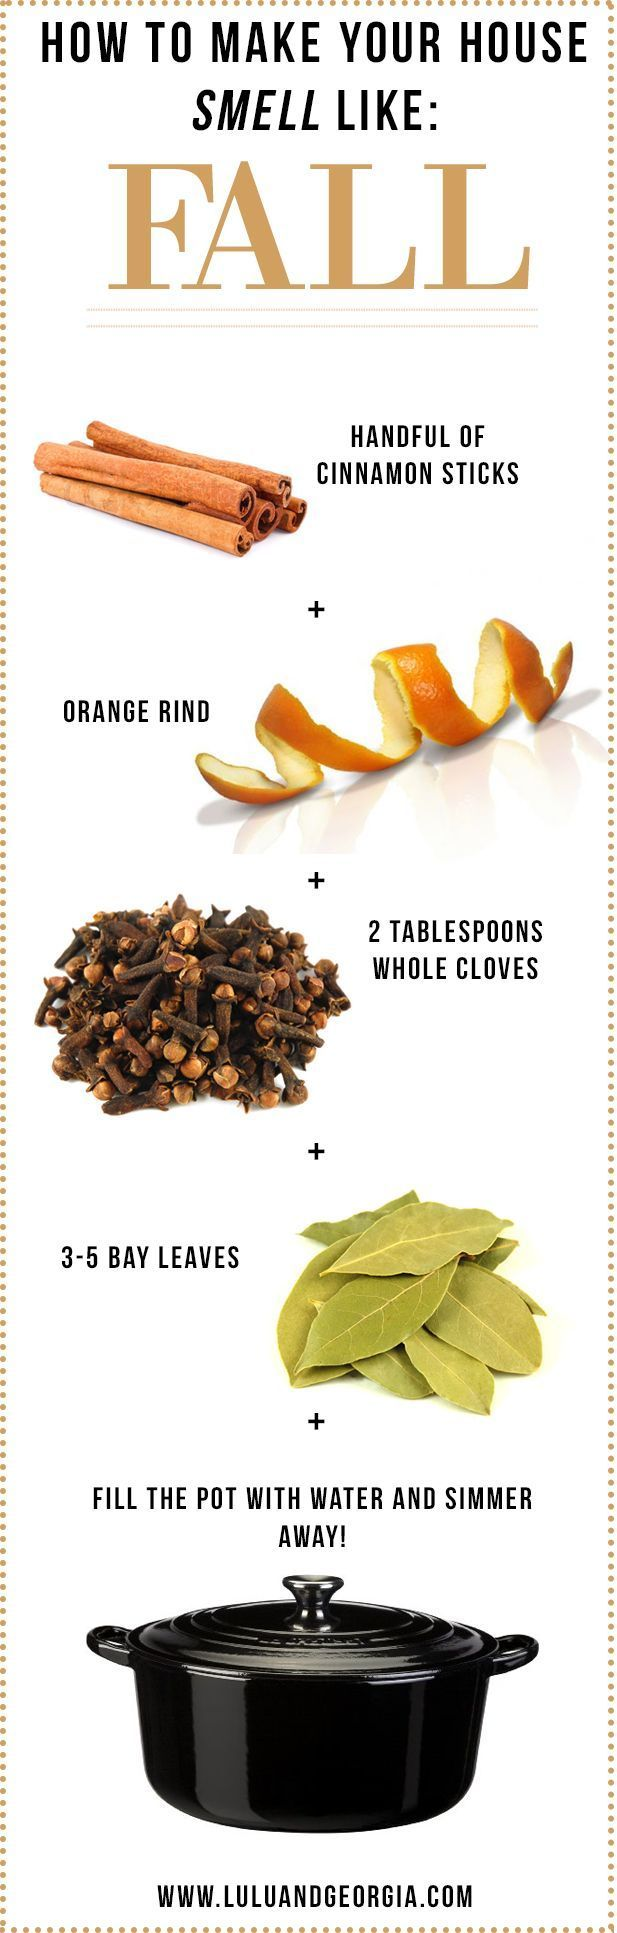 How To Make Your House Smell Like FALL! ~ Just Add Cinnamon Sticks, Orange